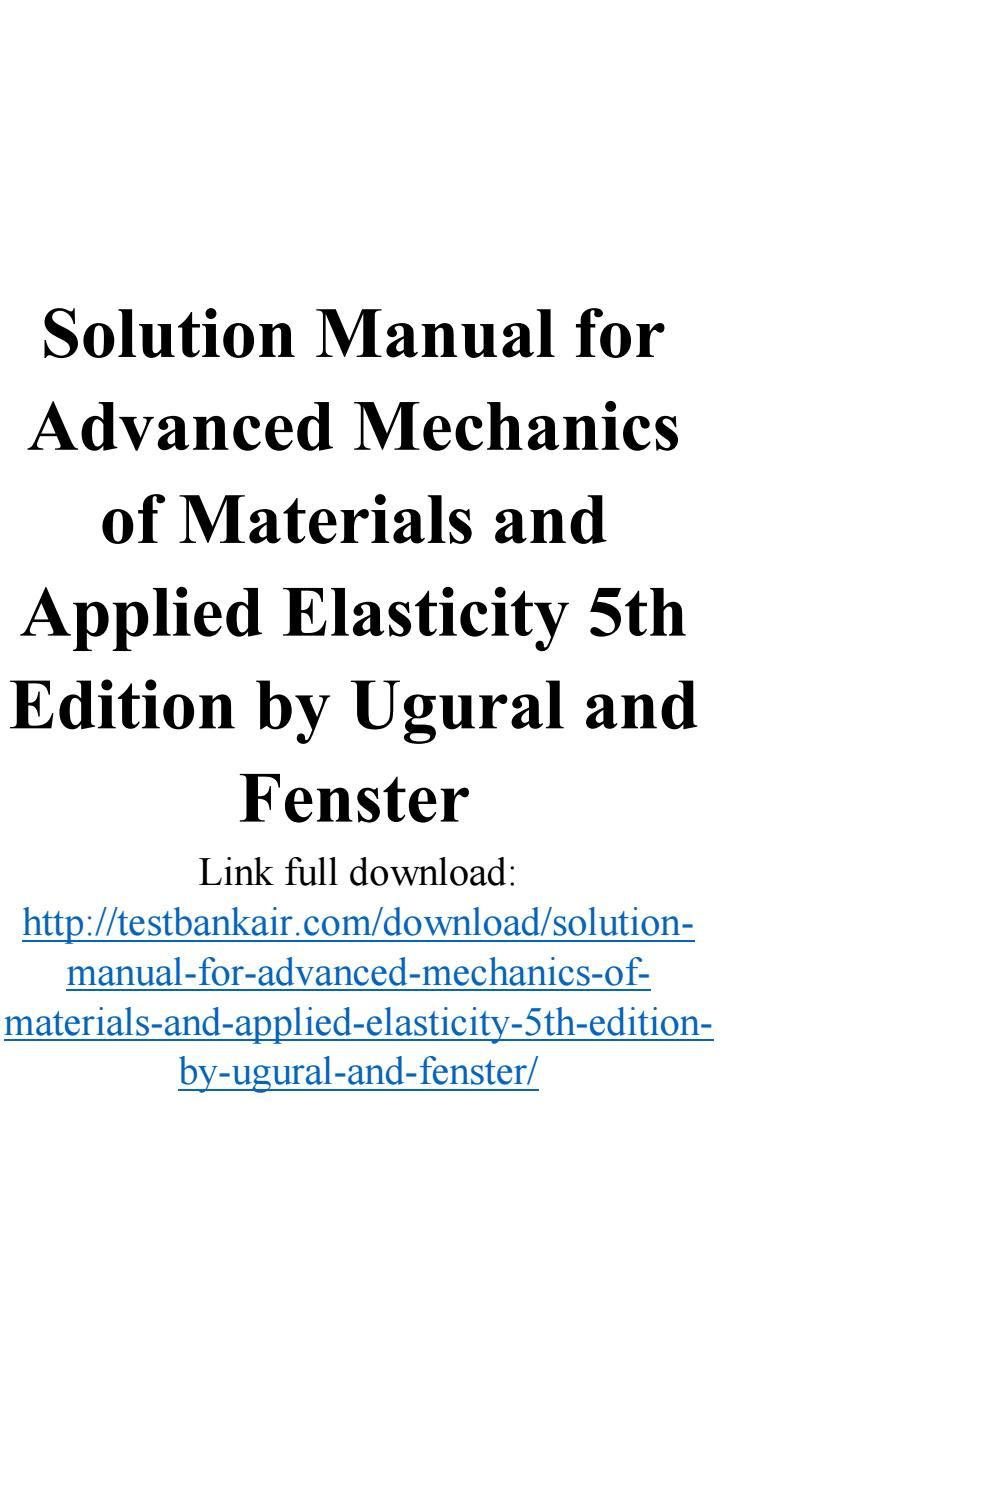 Solution Manual for Advanced Mechanics of Materials and Applied Elasticity  5th Edition by Ugural